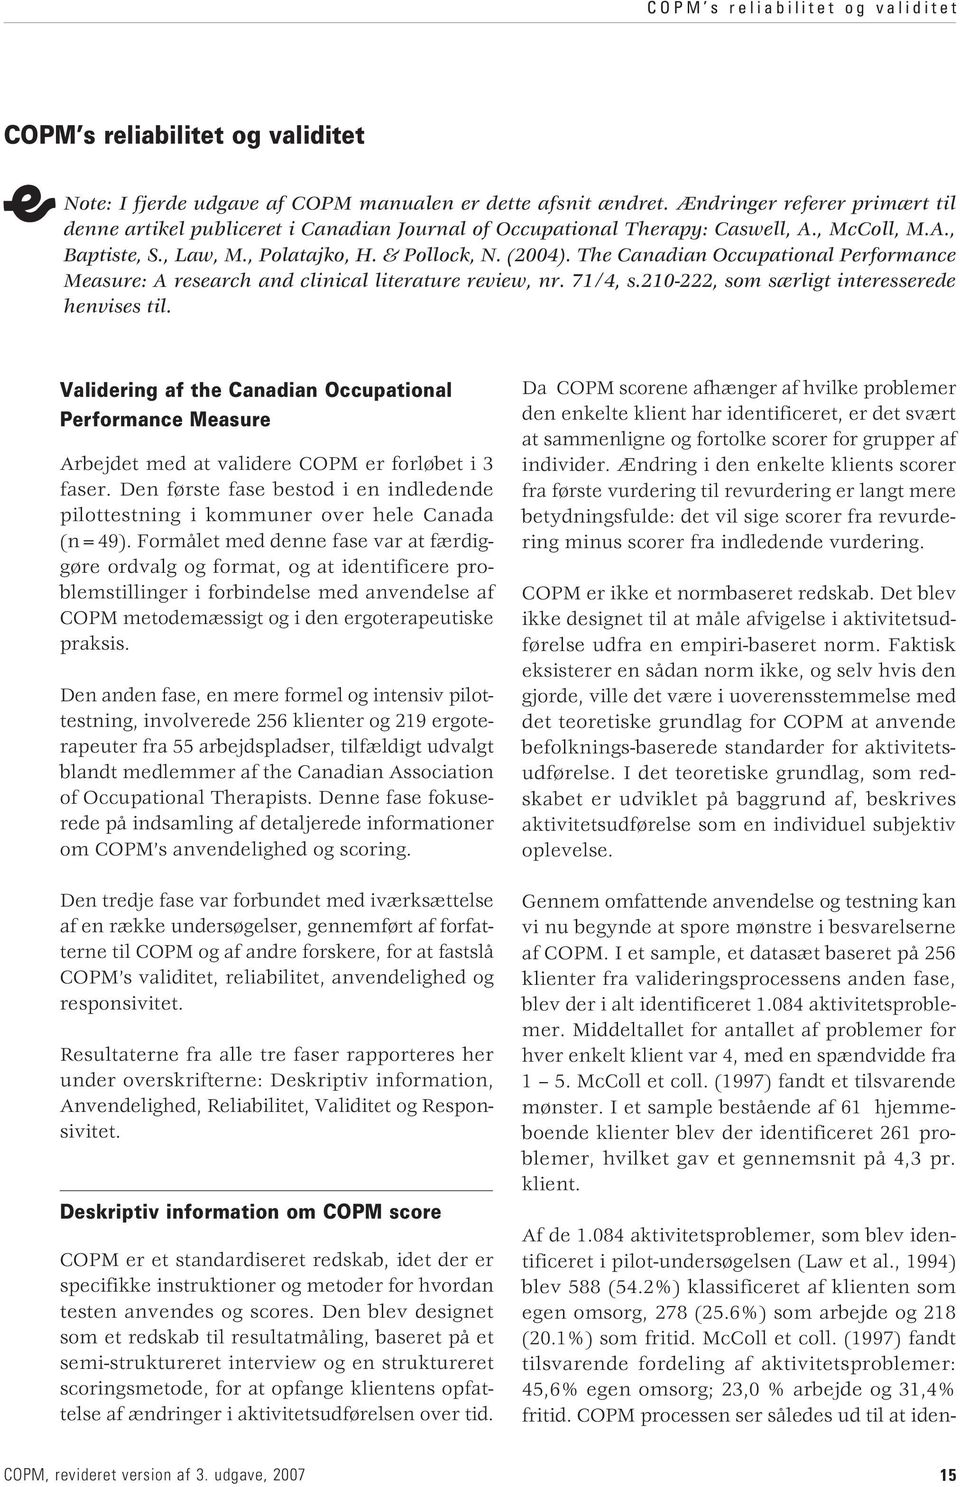 The Canadian Occupational Performance Measure: A research and clinical literature review, nr. 71/4, s.210-222, som særligt interesserede henvises til.